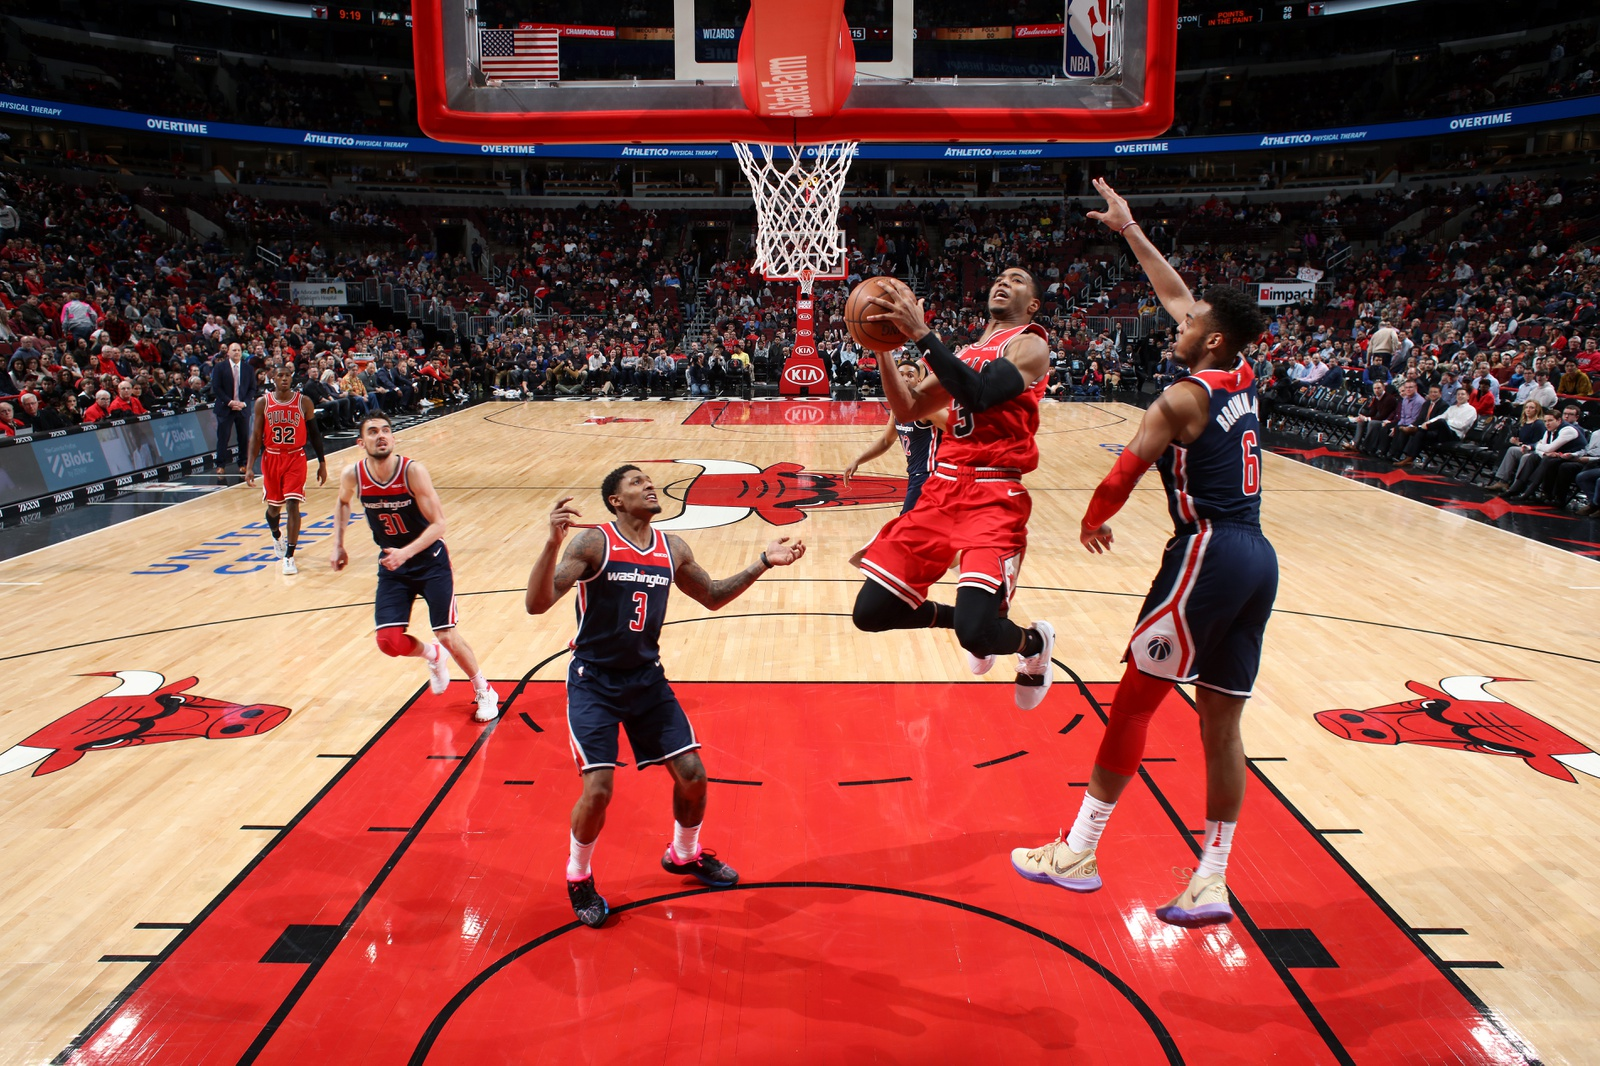 Shaquille Harrison #3 of the Chicago Bulls goes to the basket against the Washington Wizards on March 20, 2019 at the United Center in Chicago, Illinois